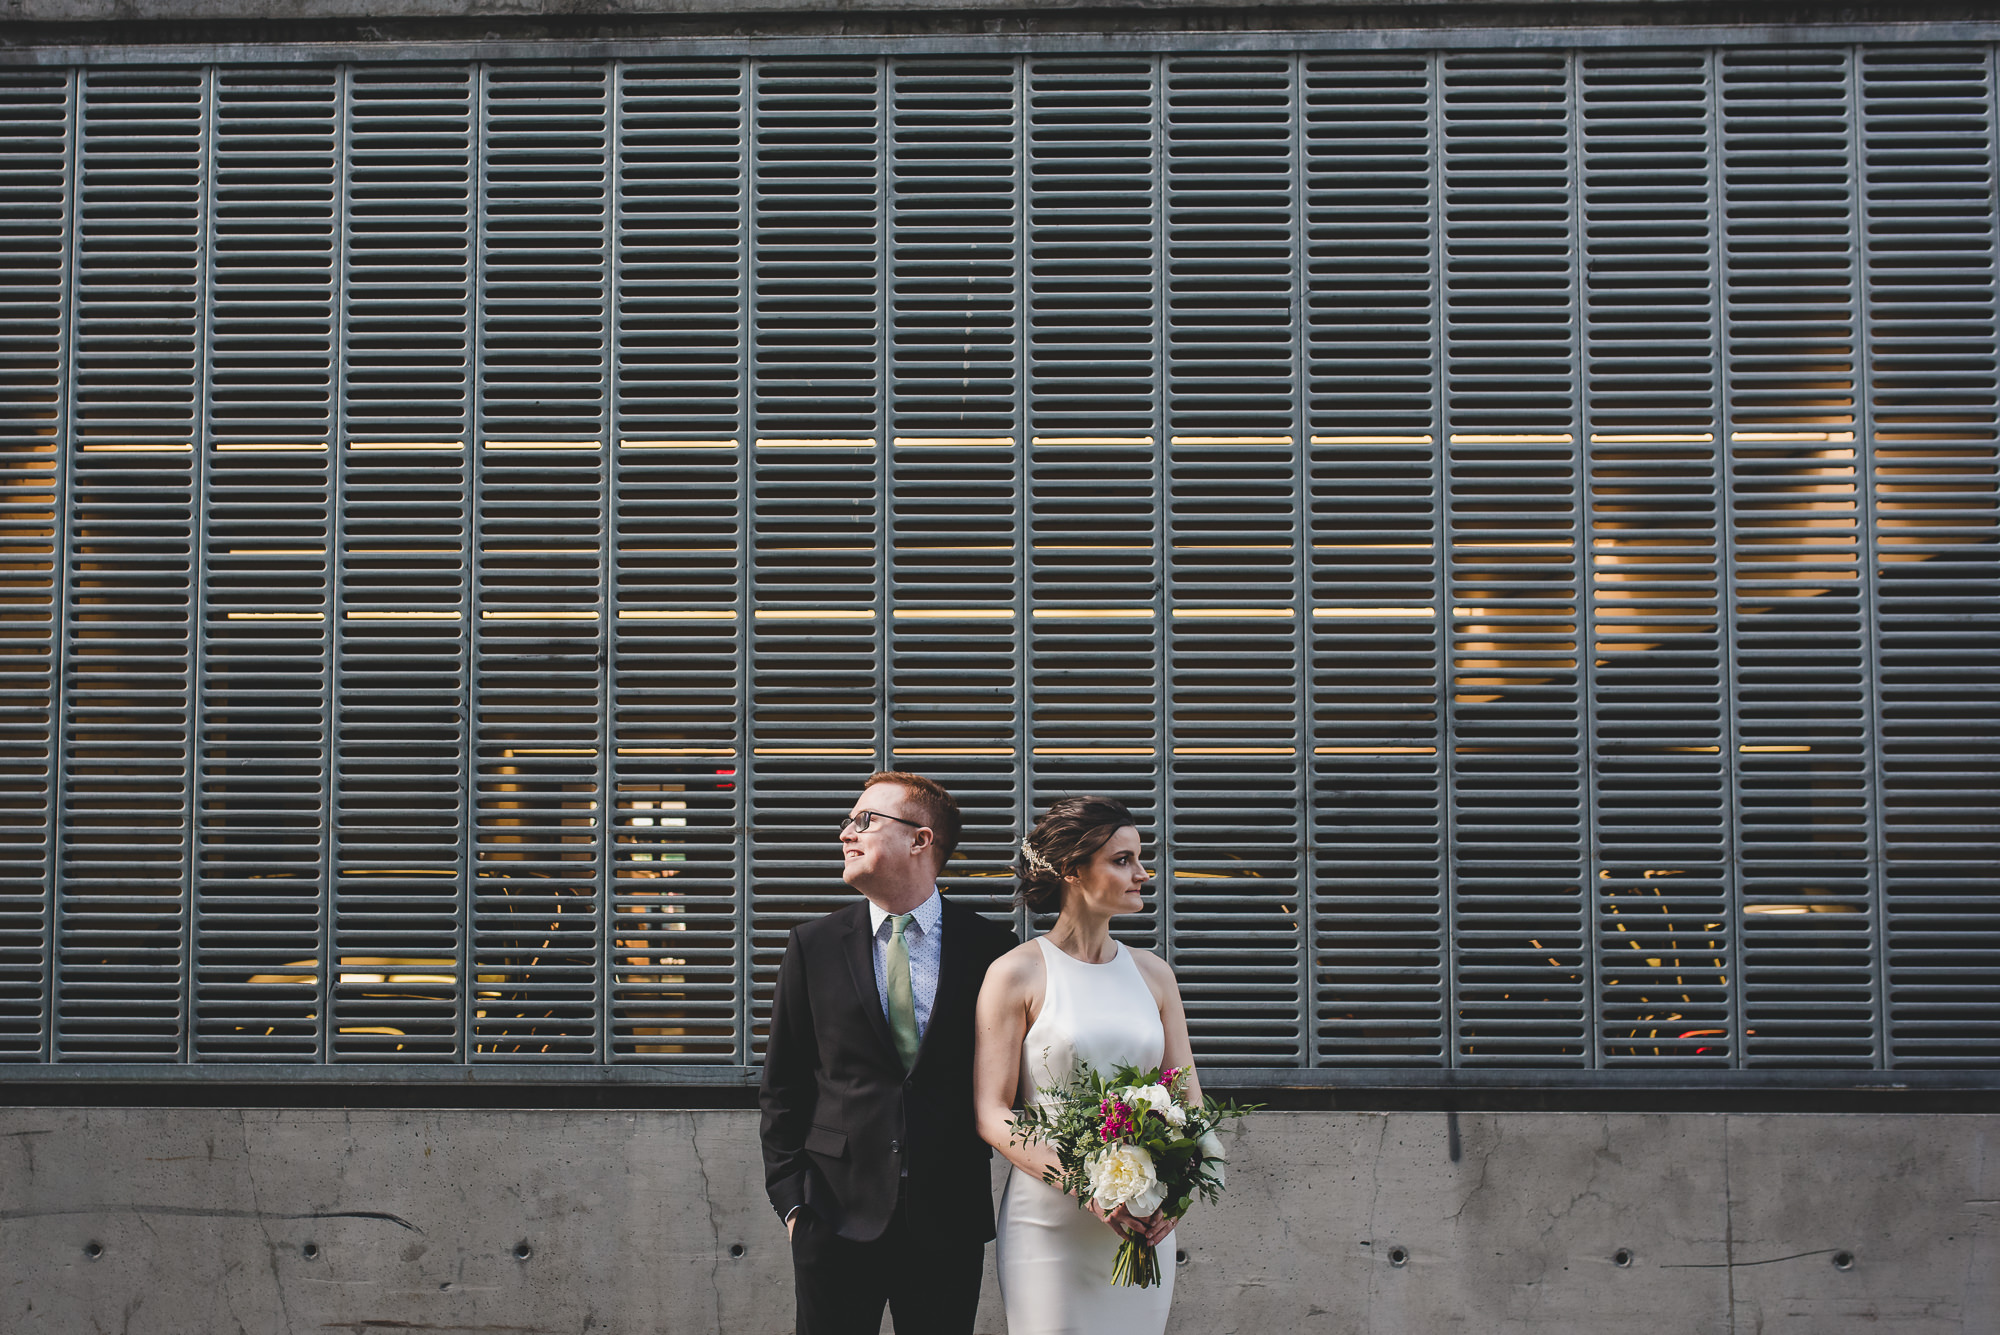 LAbattoir Wedding | Vancouver Wedding Photographer